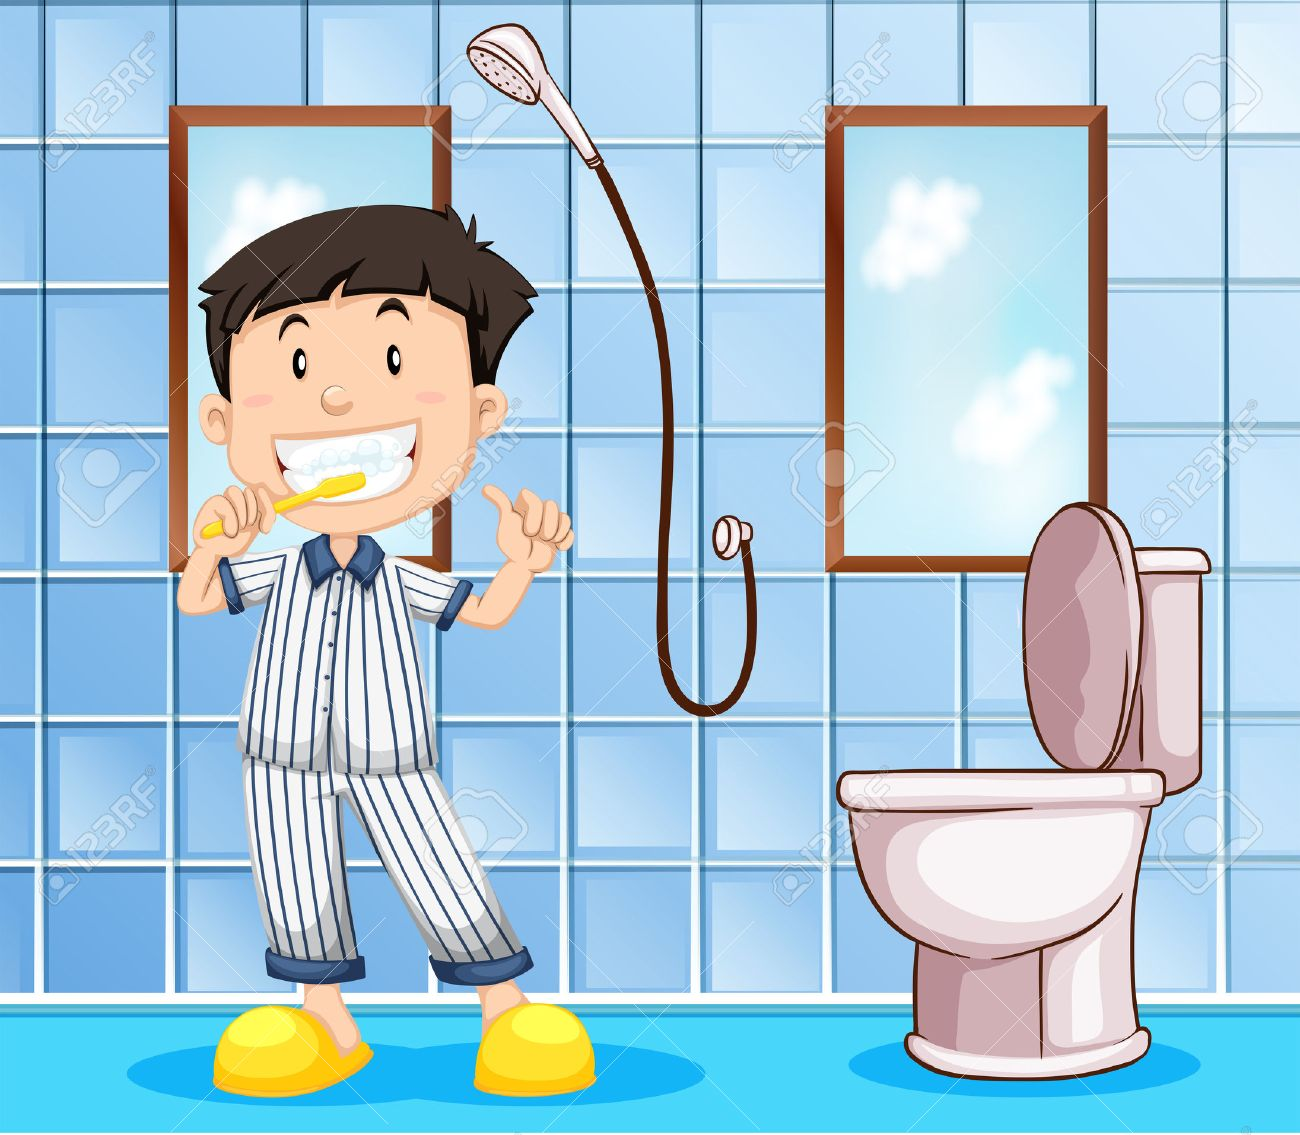 Boy Brushing Teeth In The Bathroom Illustration Royalty Free Cliparts Vectors And Stock Illustration Image 48391241